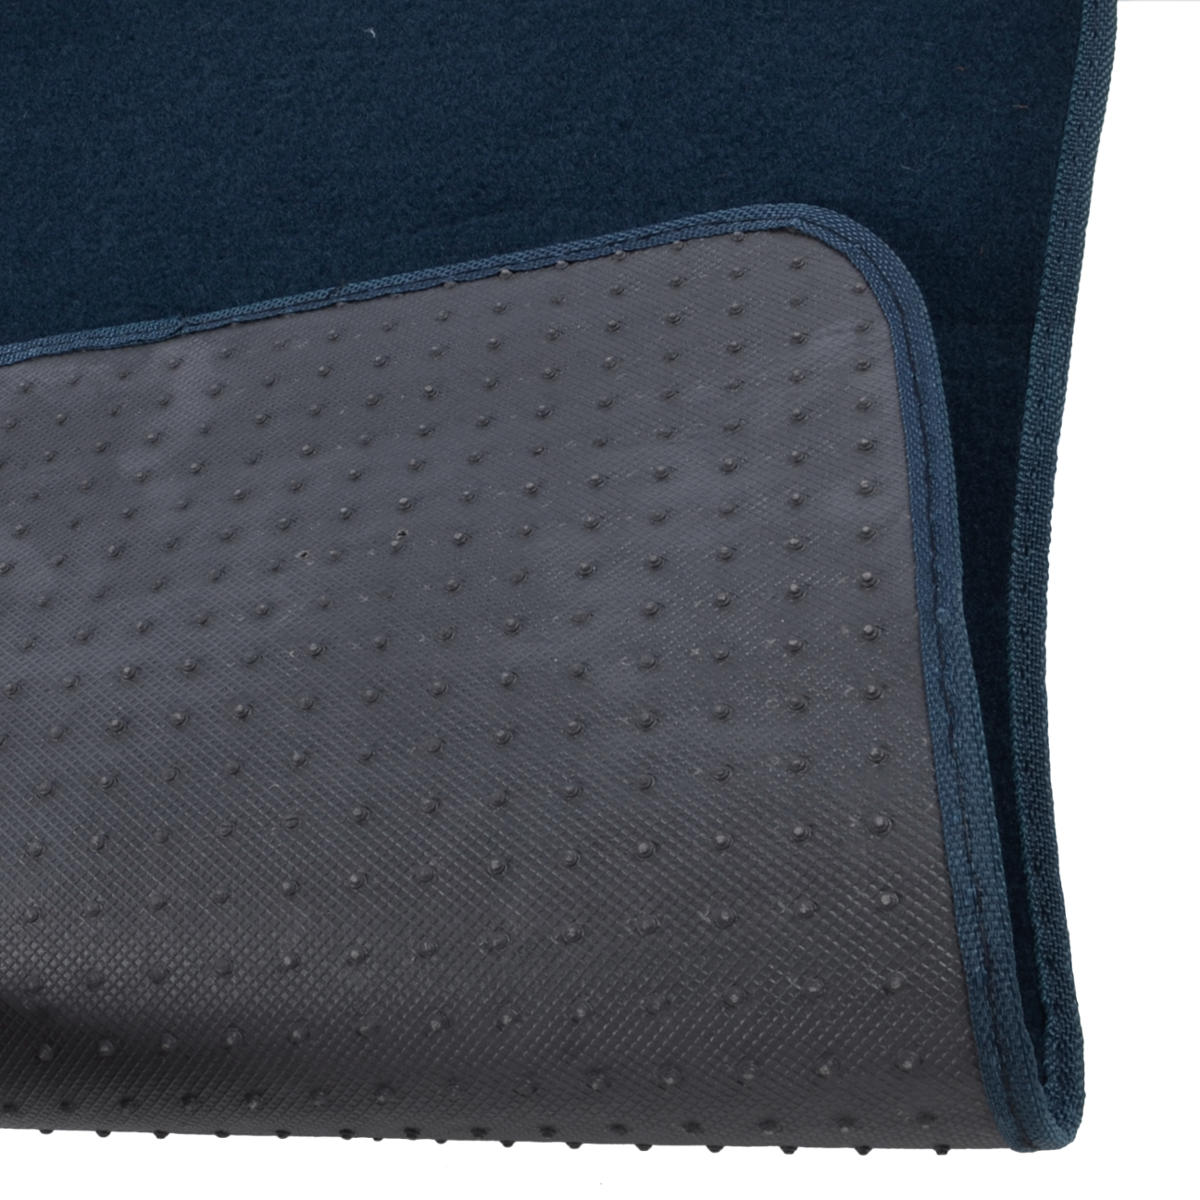 Auto Floor Mats For Car Classic Carpet W Heelpad Blue 4